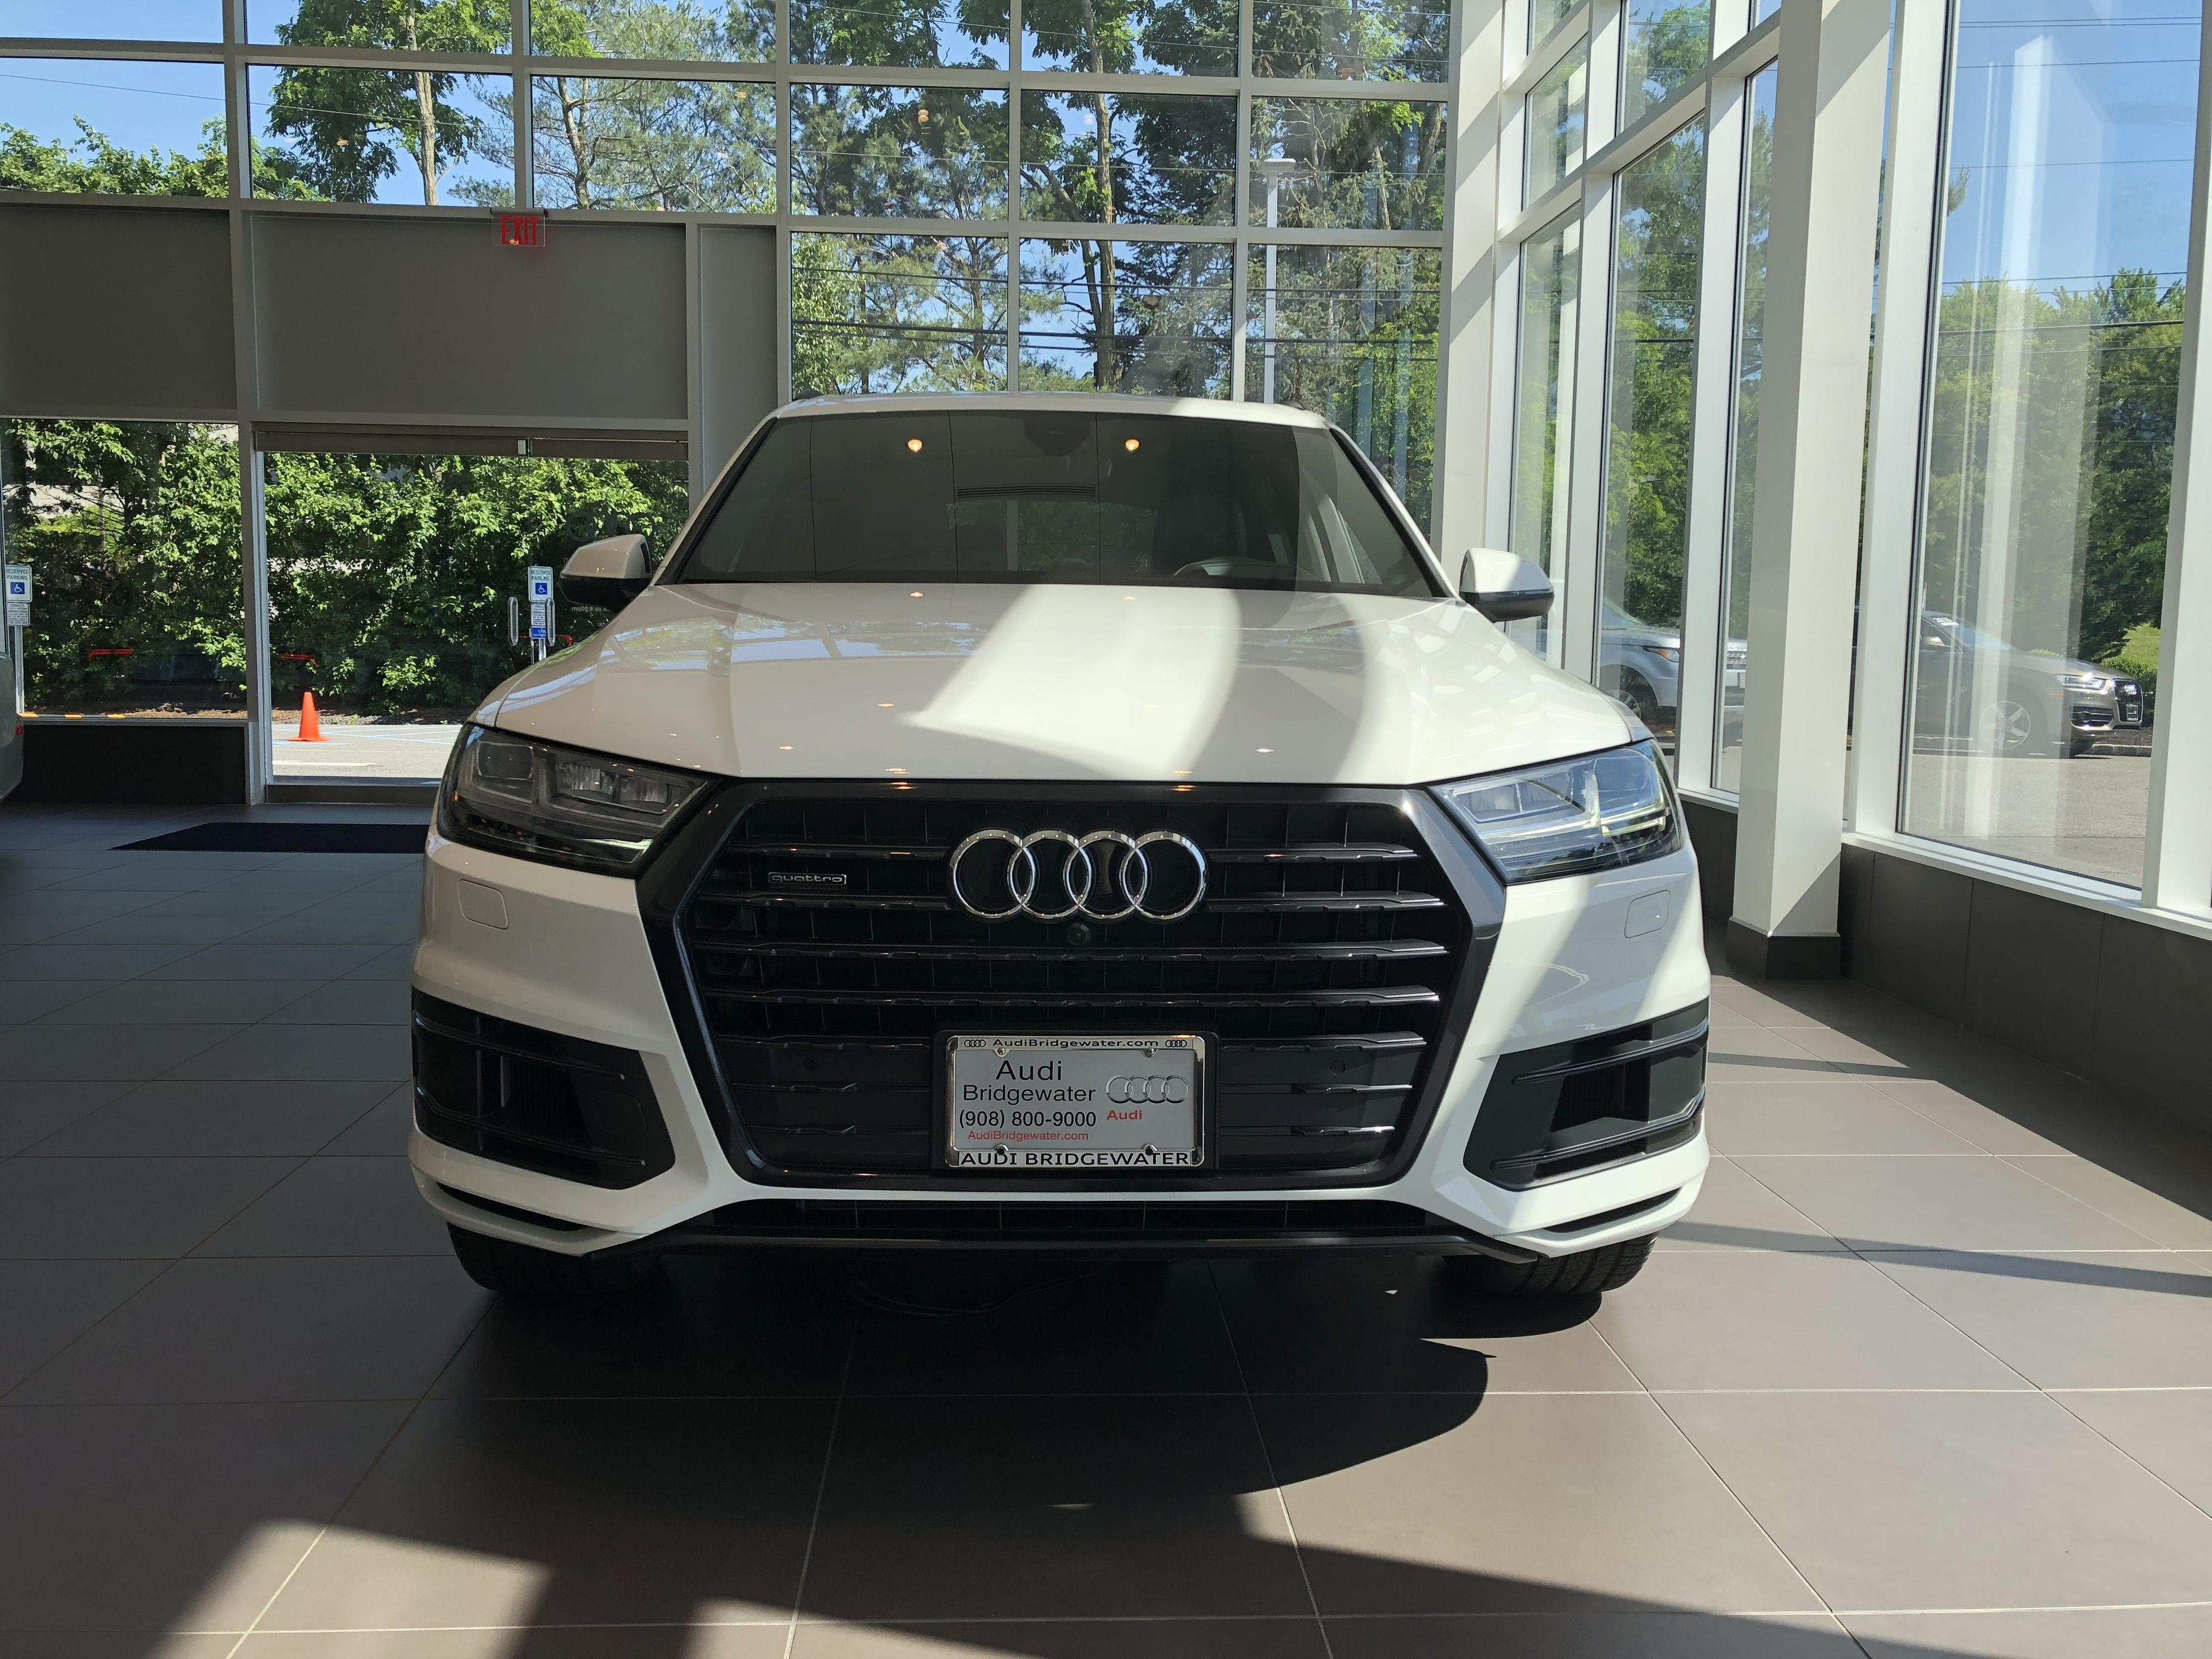 2018 Audi Q7 In Carrara White Front View Of Grill And Headlights Vehicle Available At Audi Of Bridgewater Nj Audi Dealership Audi Used Luxury Cars